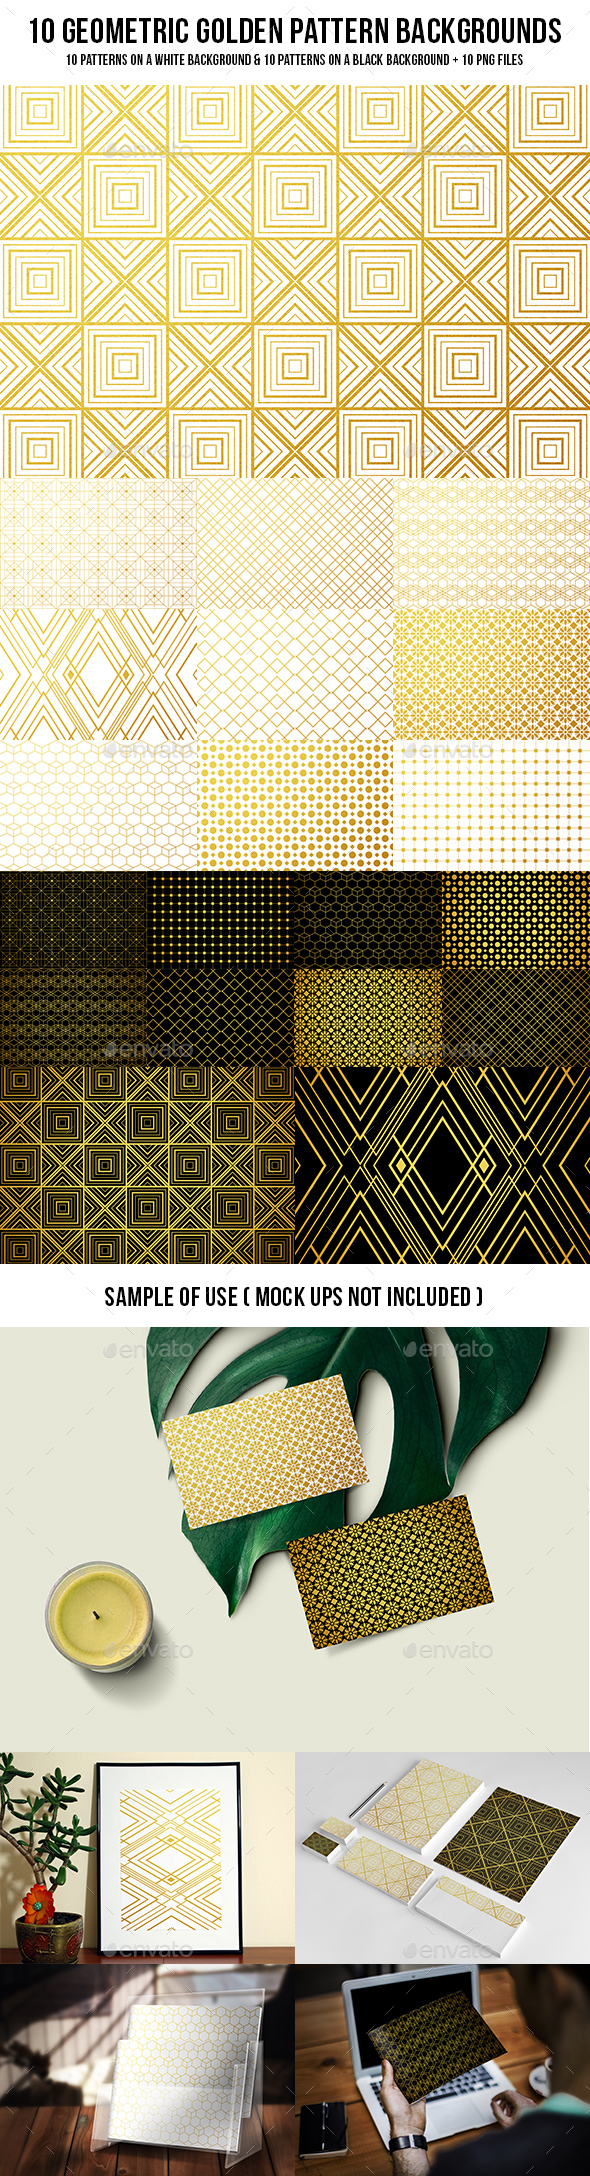 Geometric Golden Pattern Backgrounds - Patterns Backgrounds